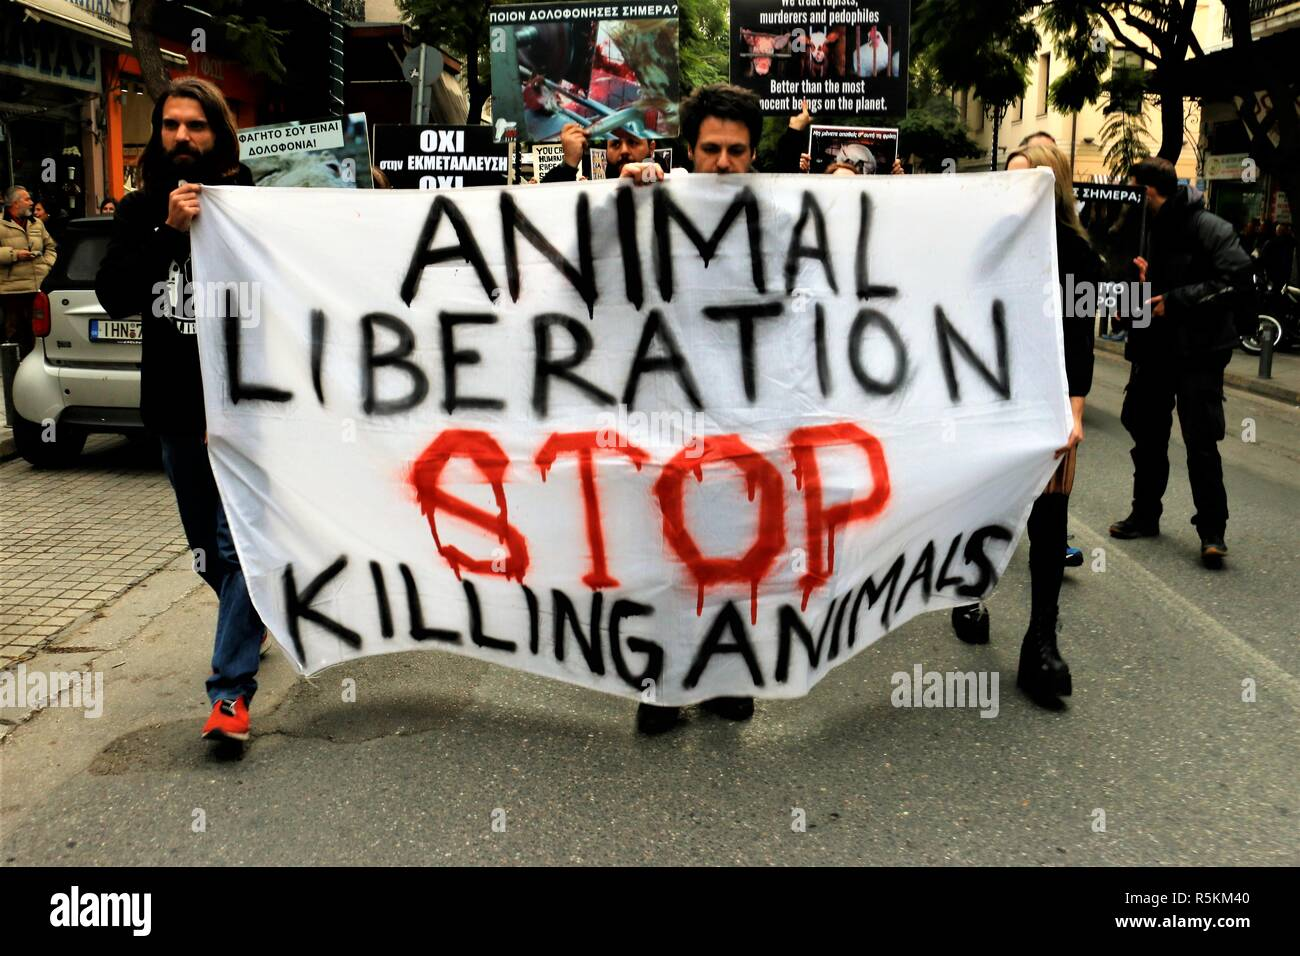 Protesters are seen holding a banner during the protest. Animal right activists demonstrate in Athens against animals' abuse, violence, mistreatment towards animals and promoting a vegan way of life. - Stock Image